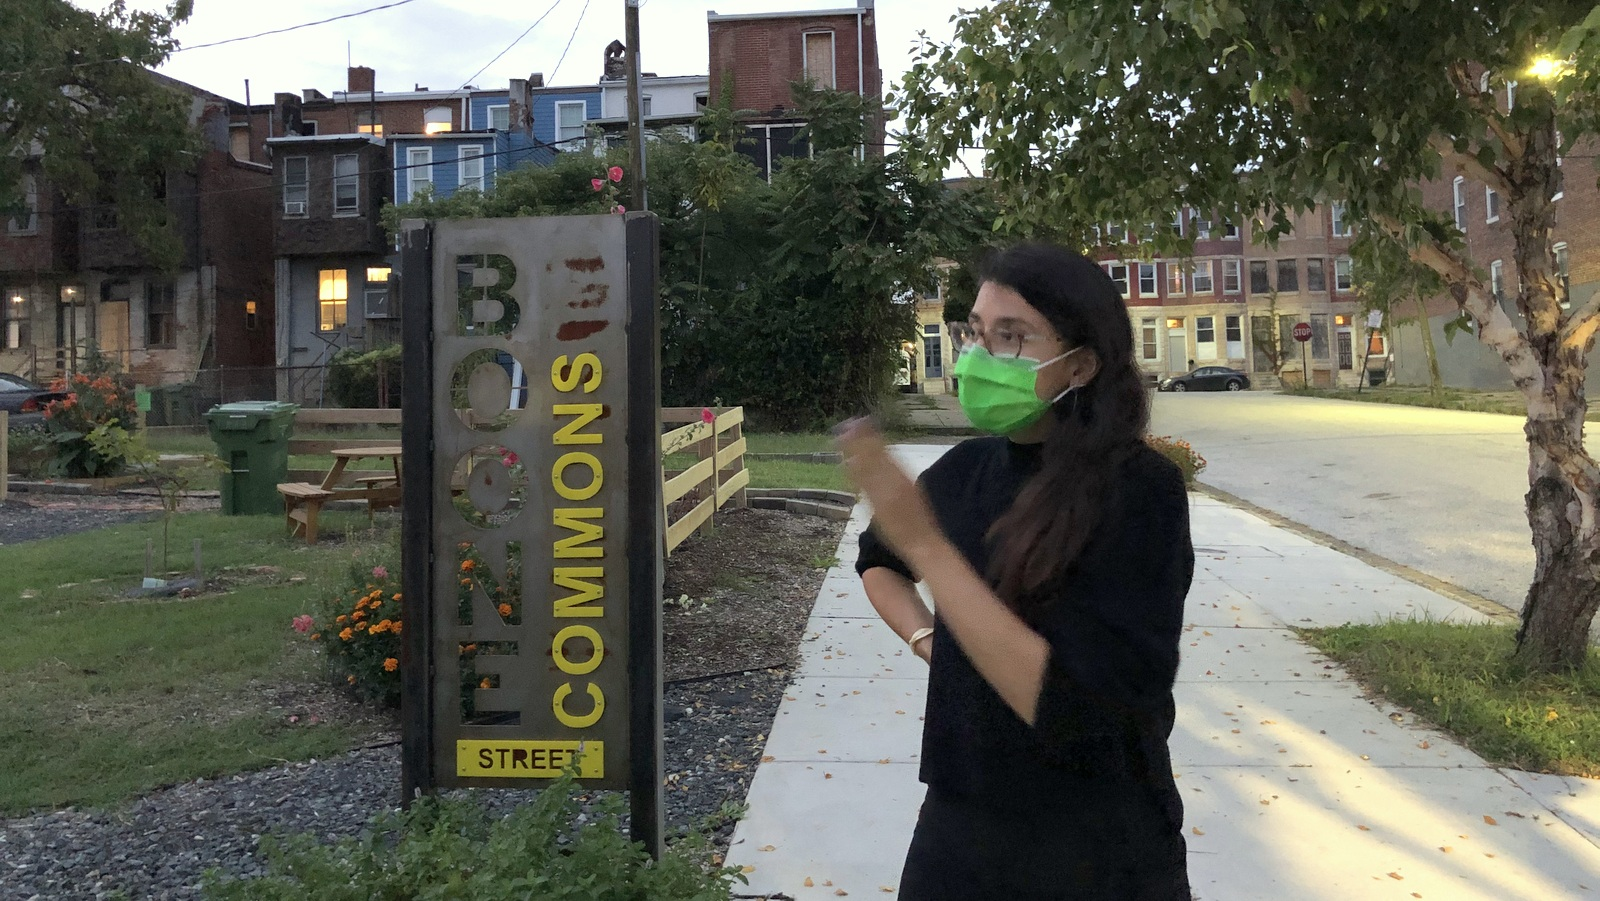 Candidate Franca Muller Paz at Boone Street Commons in East Baltimore. (Ian Round)